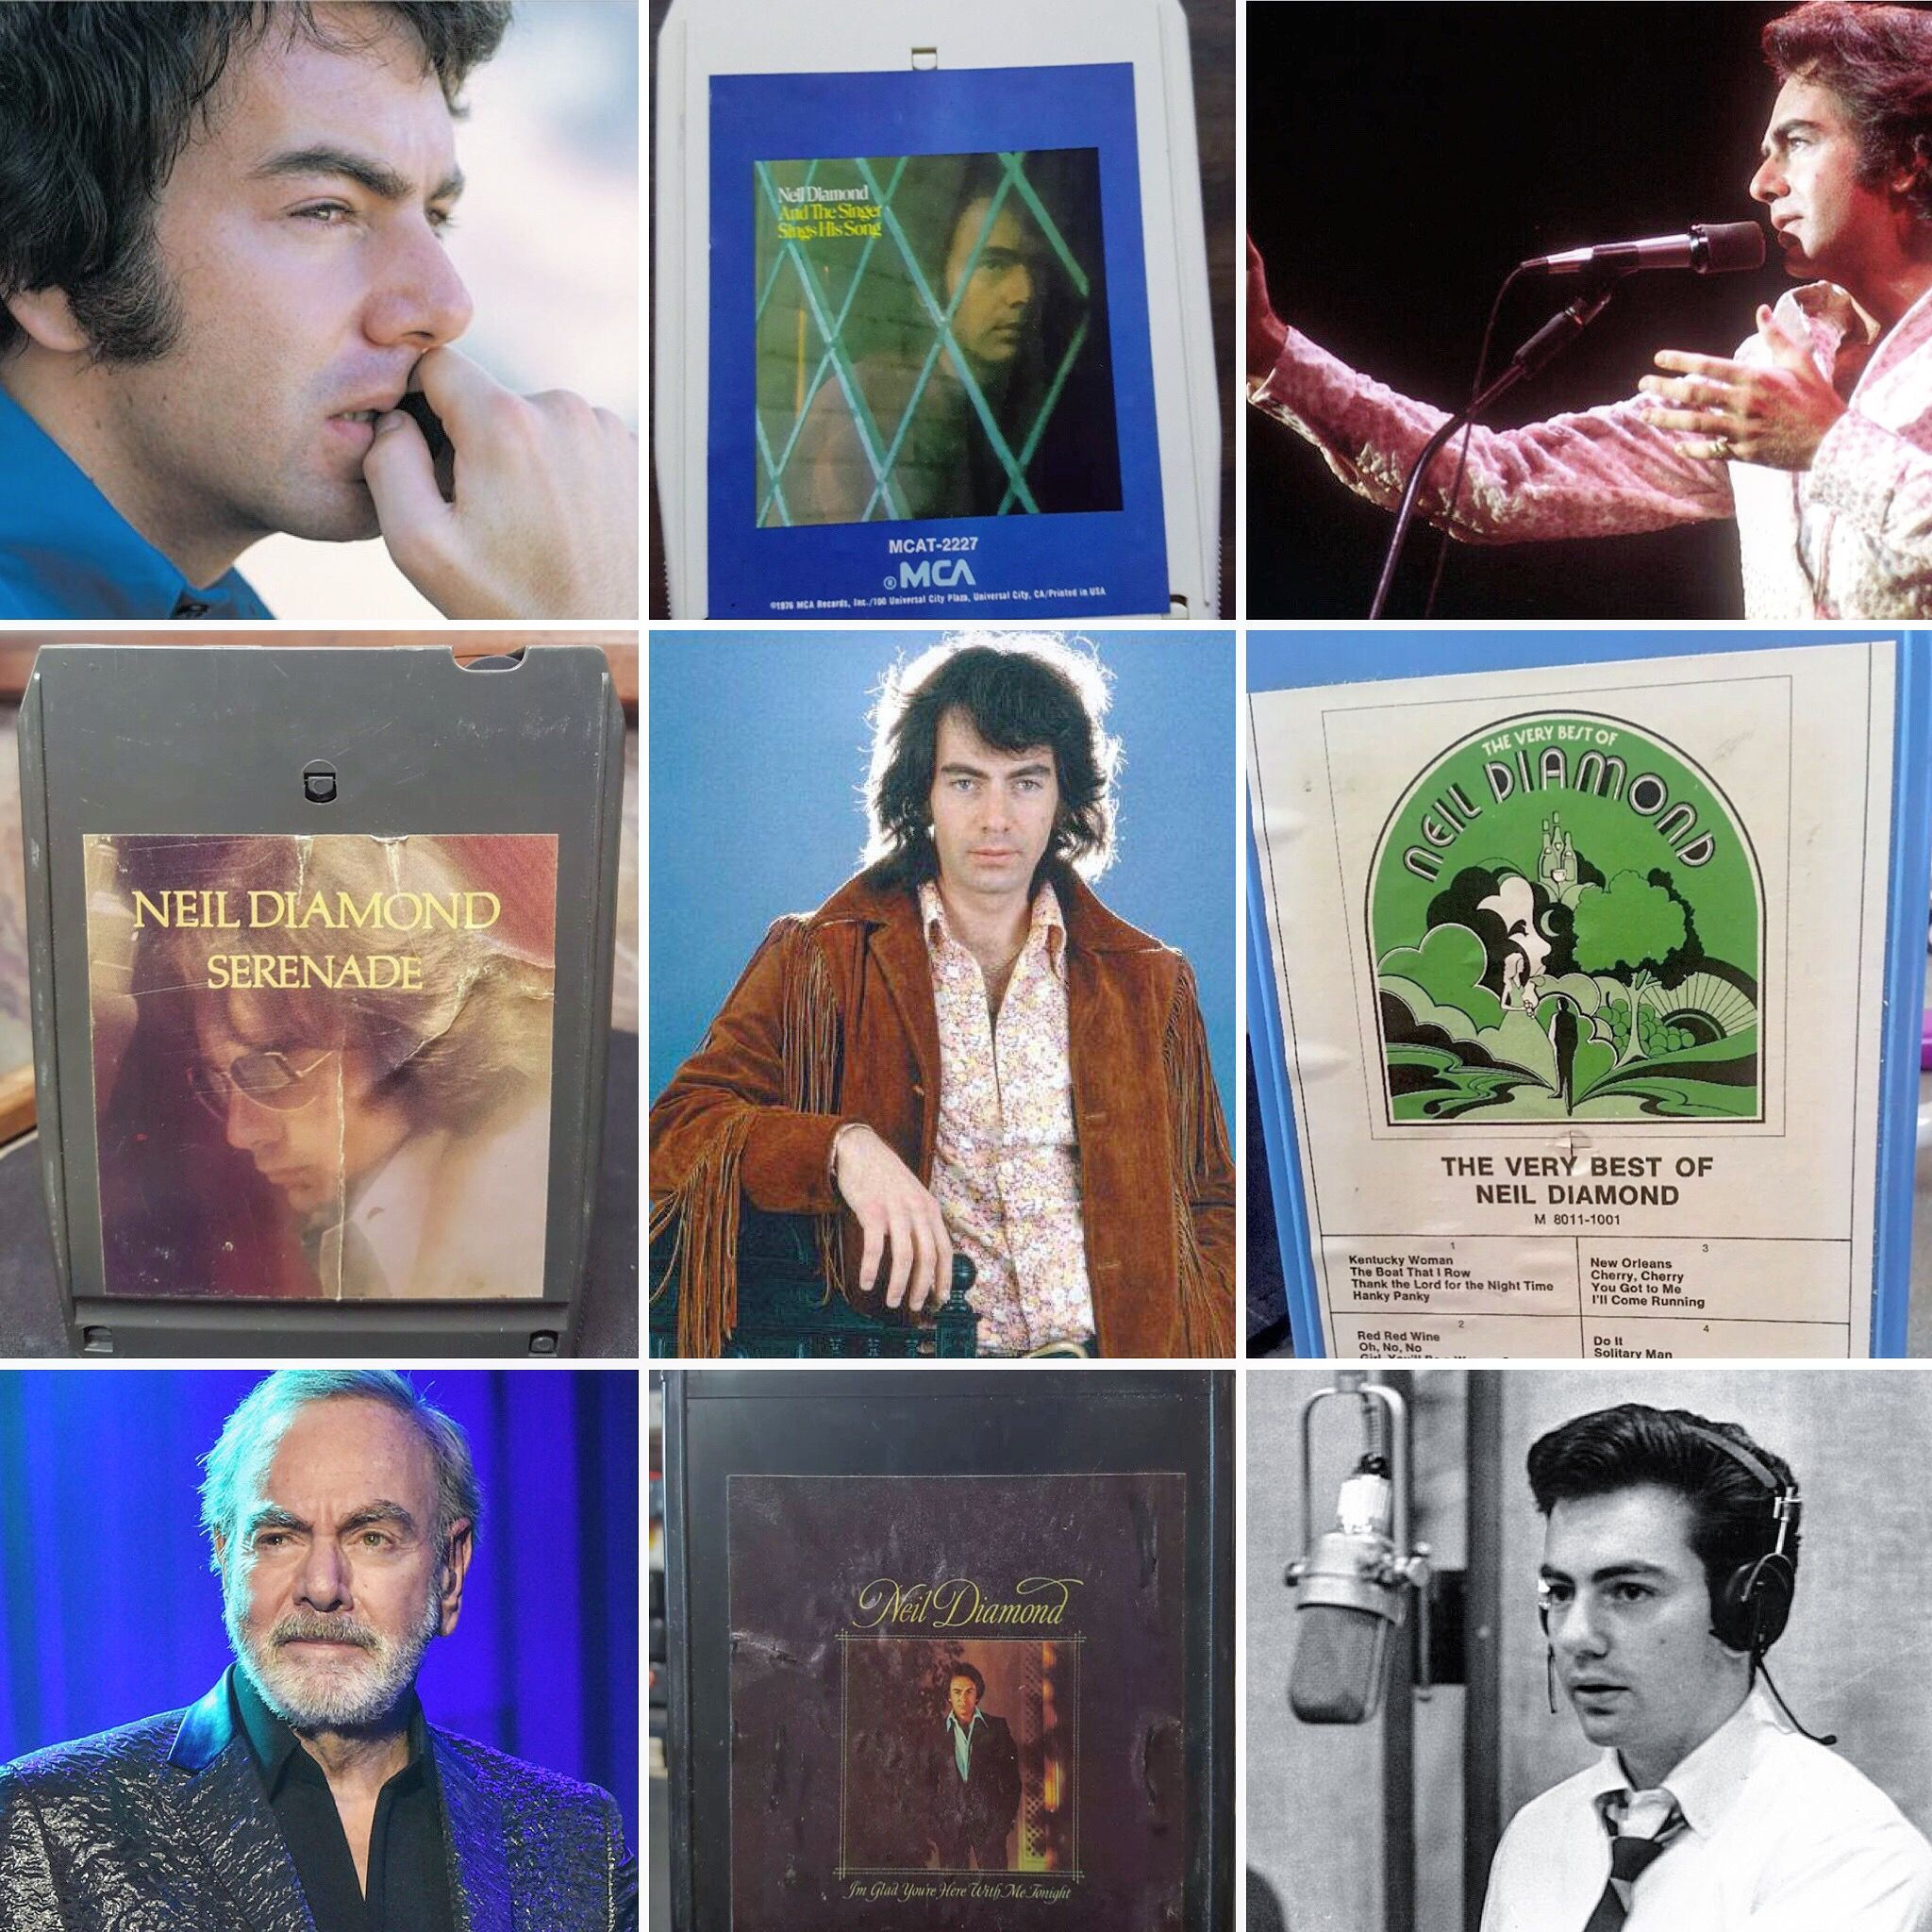 Happy Birthday, Neil Diamond. Thanks for all the Music. Celebrate with 8-Track Paradise today!